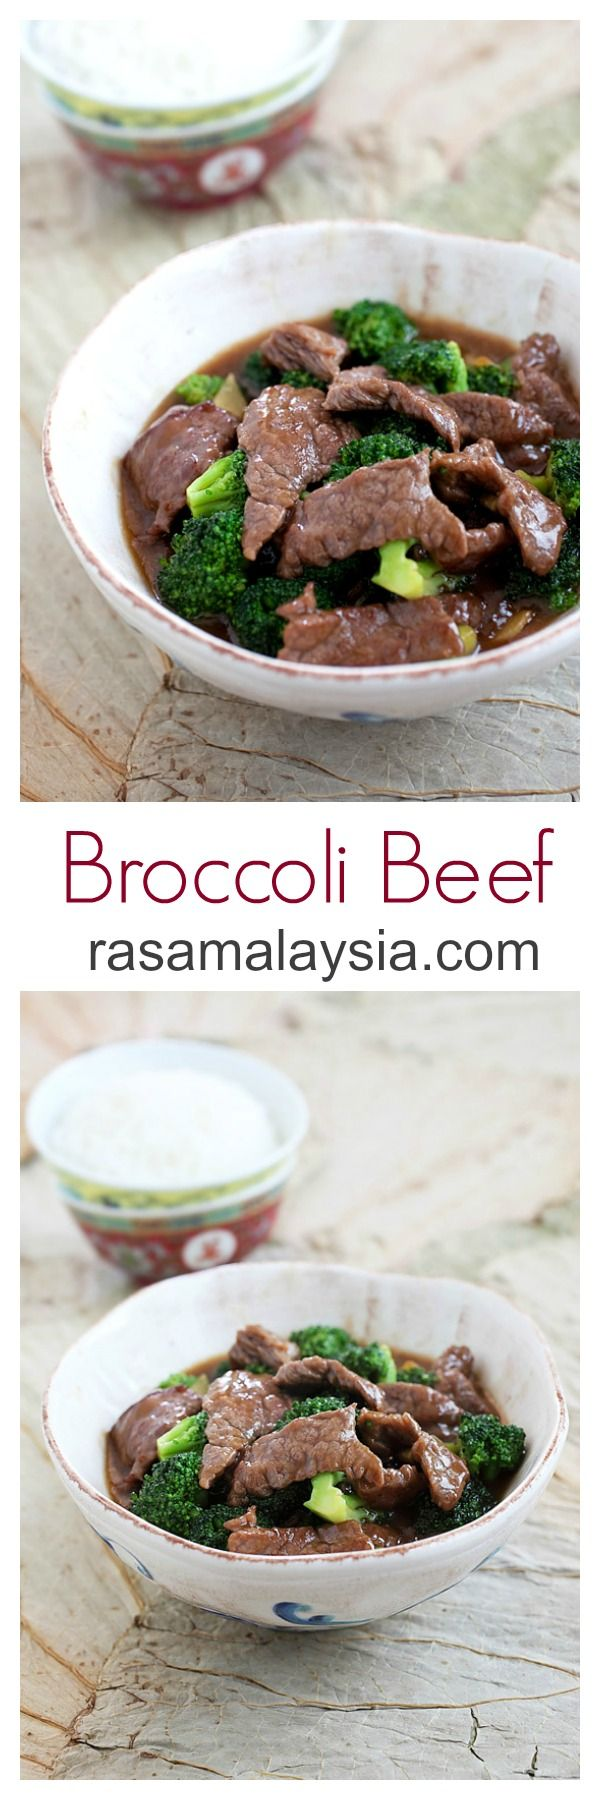 Broccoli Beef - silky, tender beef and healthy broccoli in a super yummy Chinese brown sauce, 15 mins to make and dinner is ready! | rasamalaysia.com